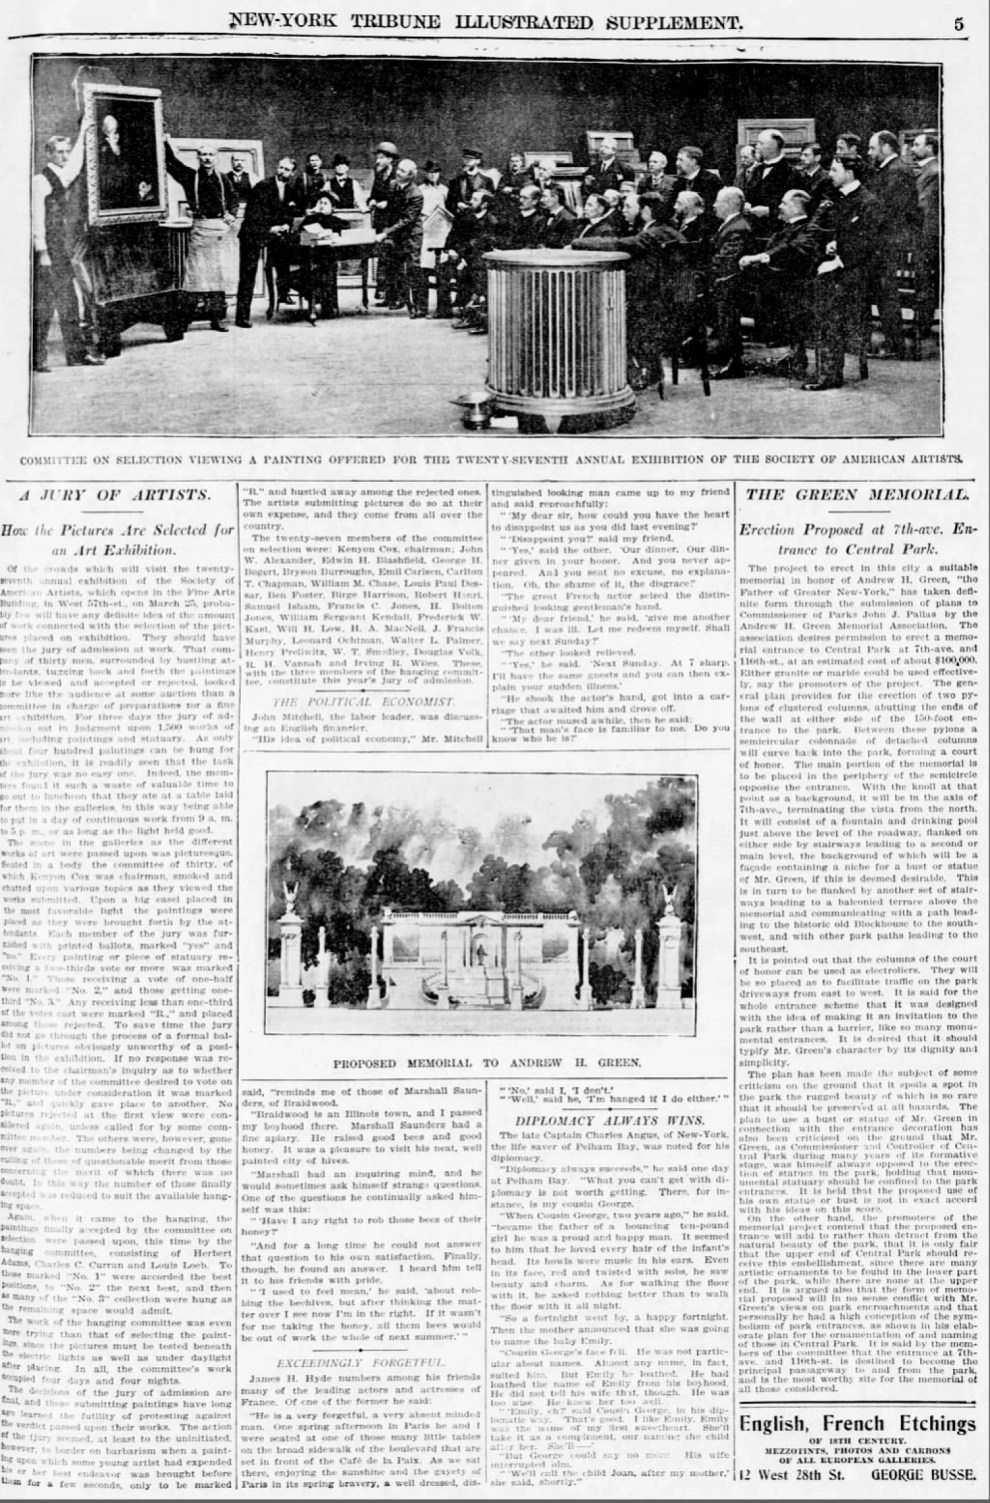 """New-York Tribune, New York, NY, """"A Jury of Artists."""", Sunday, March 19, 1905, first edition, page 19, not illustrated"""